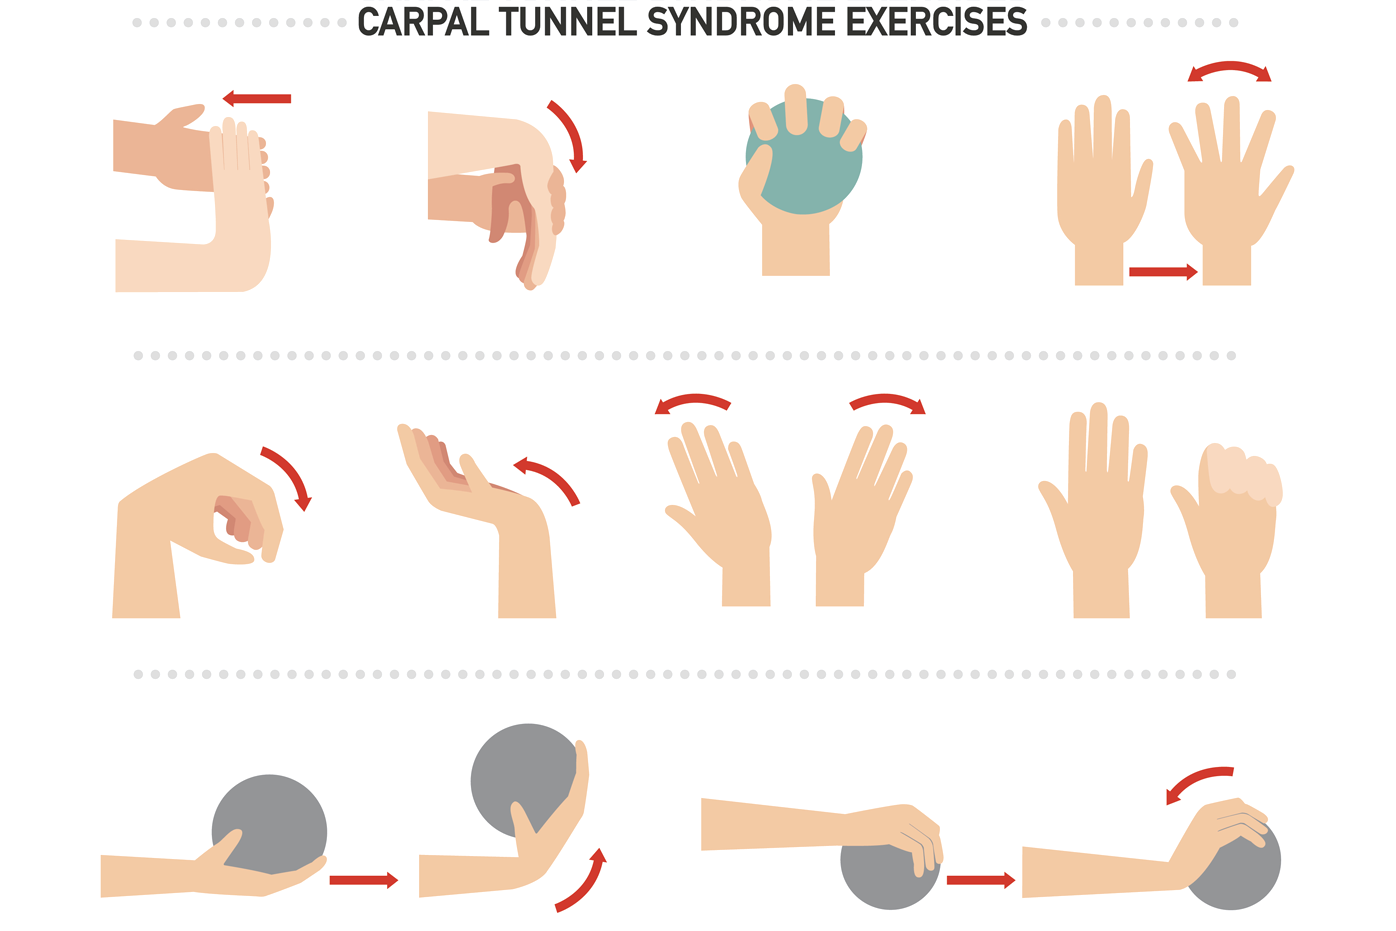 Carpal tunnel syndrome: common signs and symptoms